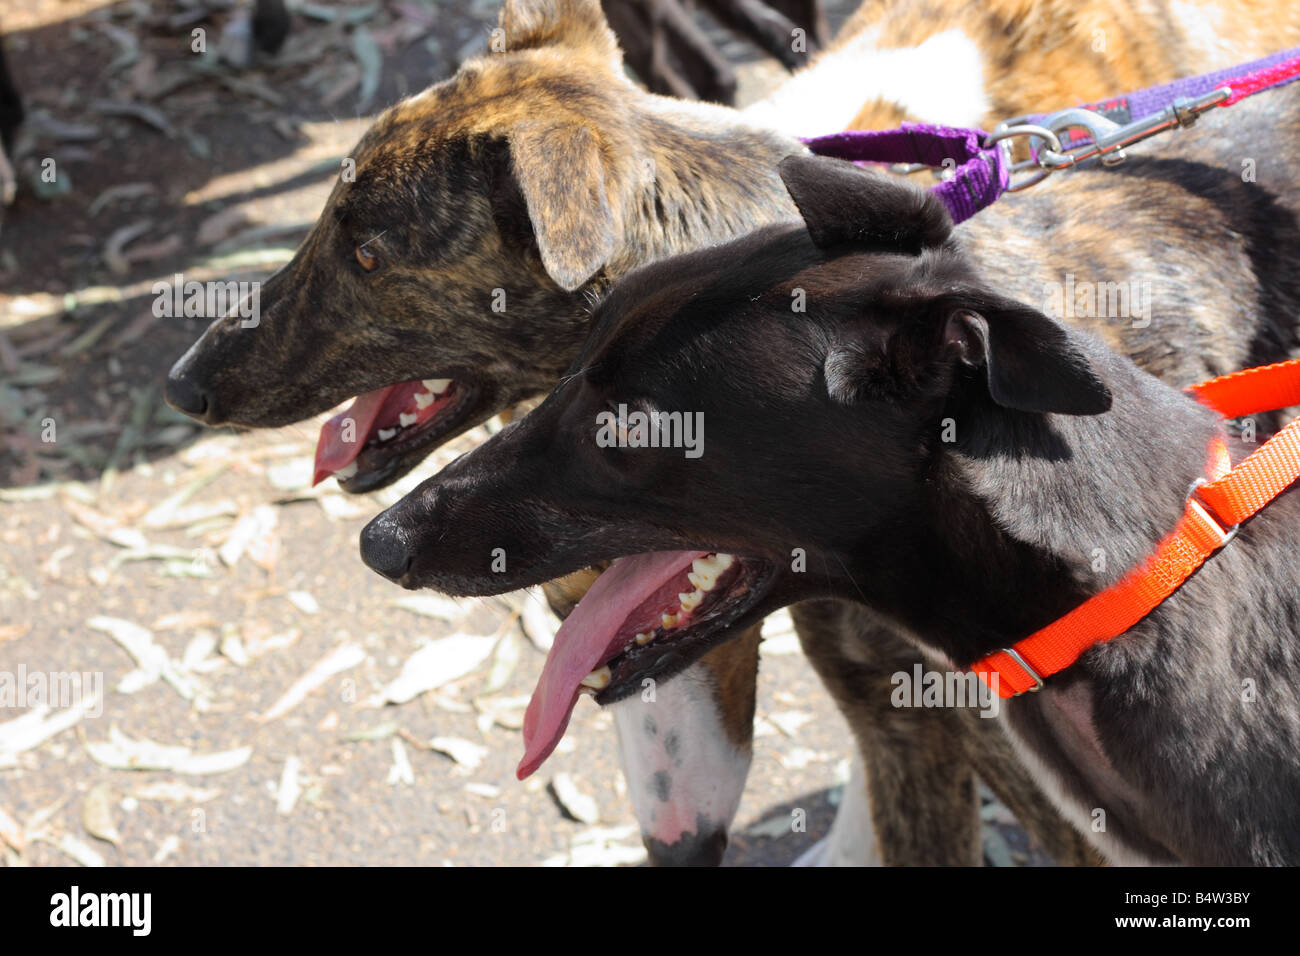 Racing Dogs Rescue - Stock Image